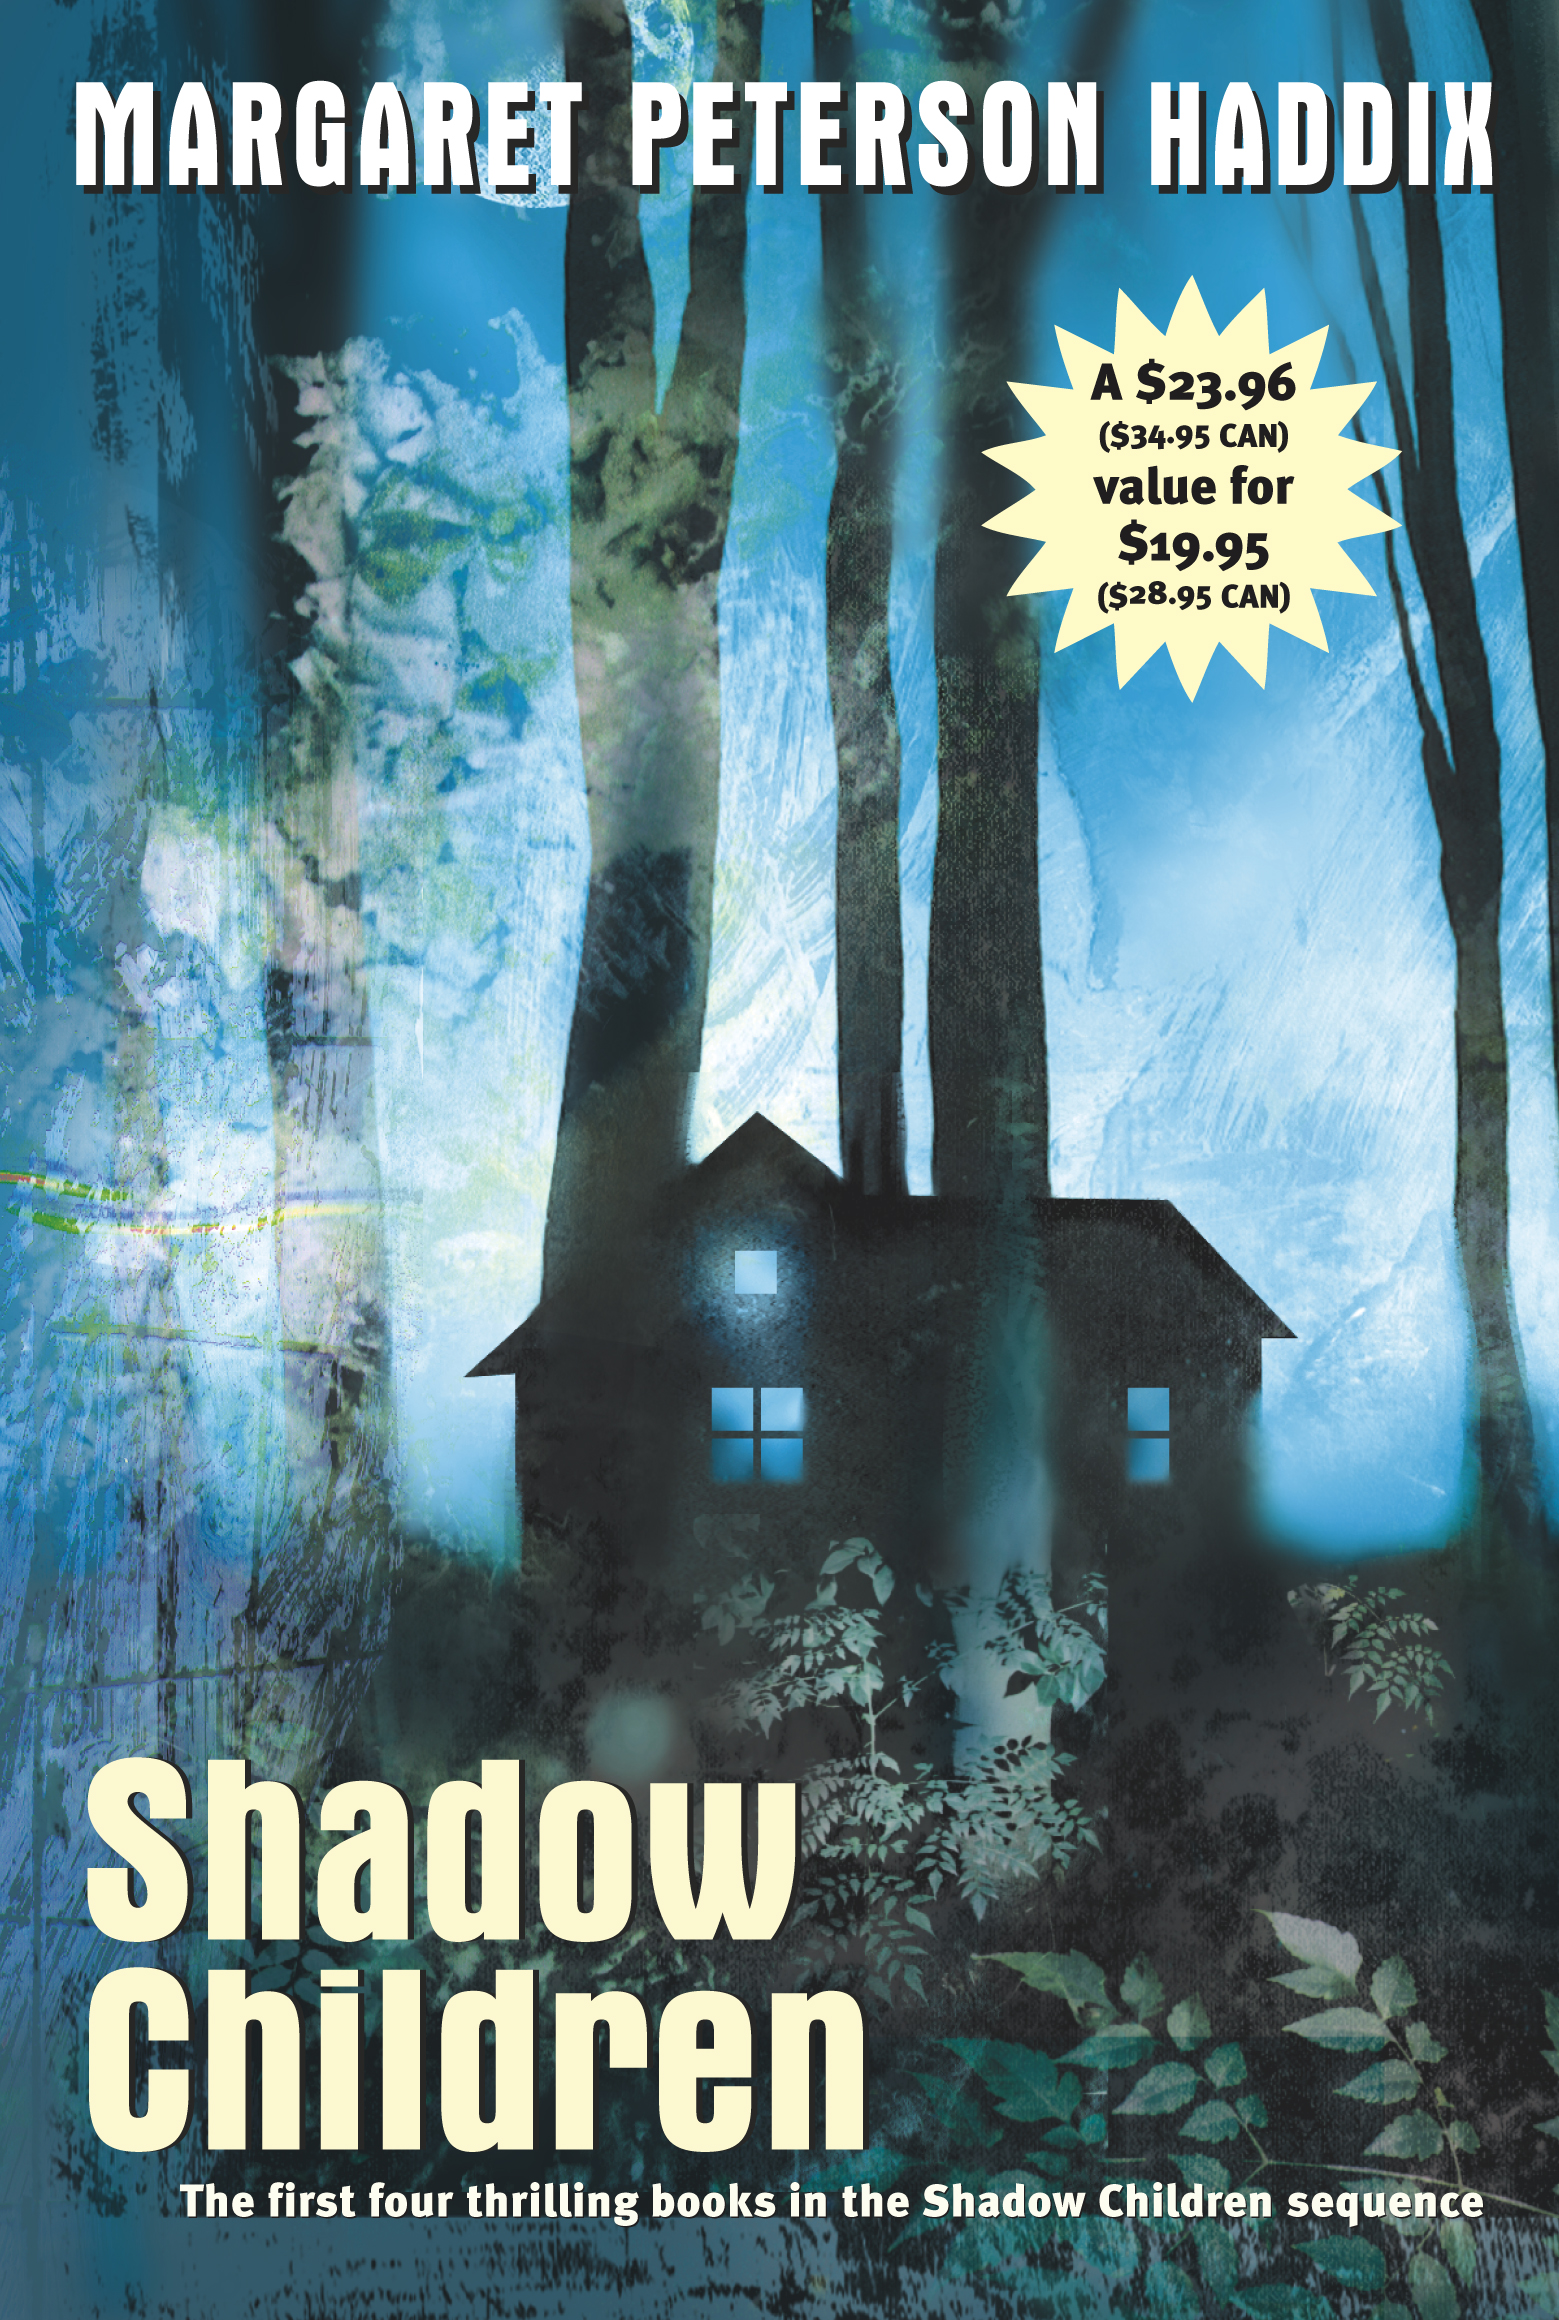 margaret peterson haddix official publisher page simon schuster book cover image jpg shadow children boxed set